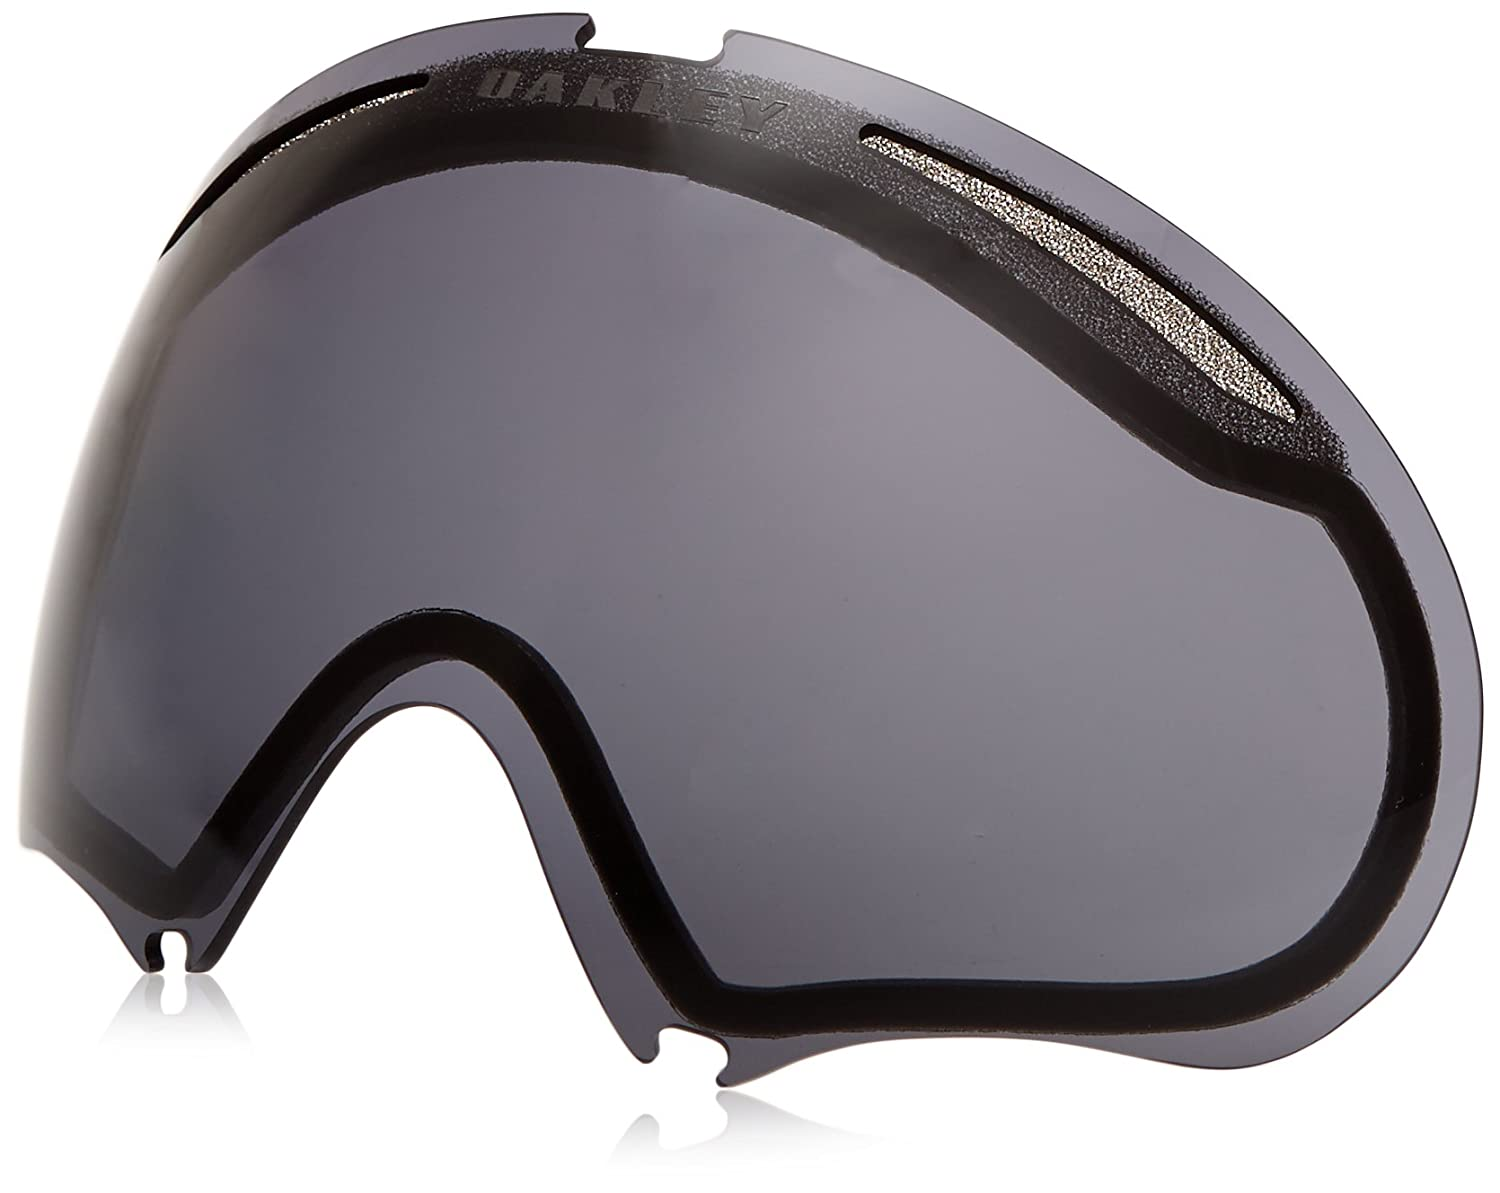 155bbd6090 Amazon.com  Oakley A-Frame 2.0 Men s Replacement Lens Snow Goggles  Accessories - Black Iridium One Size  Sports   Outdoors